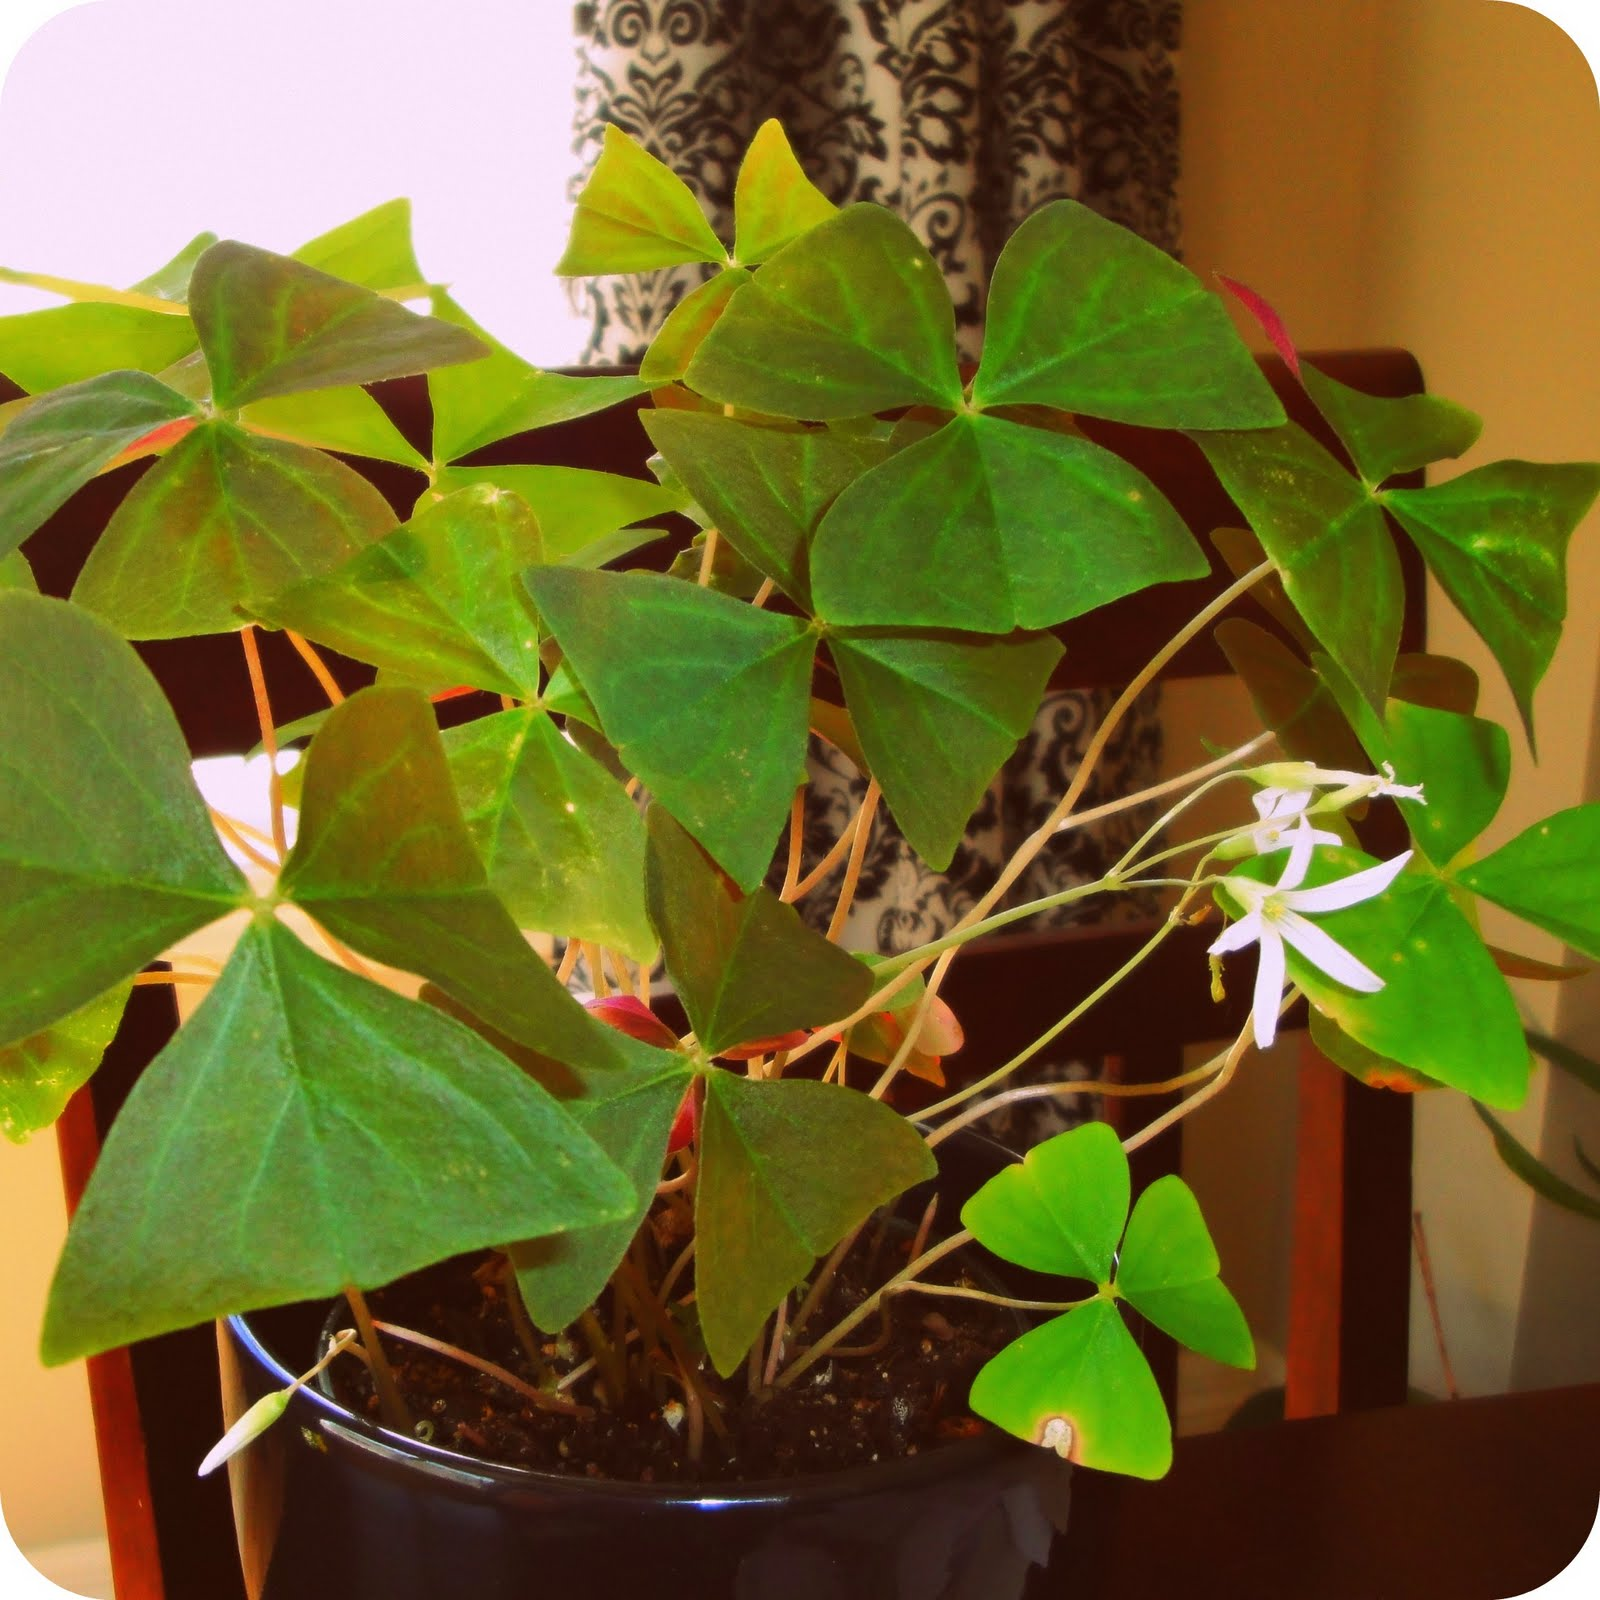 House Plants For Shady Rooms: The Scientific Domestic: House Plants II